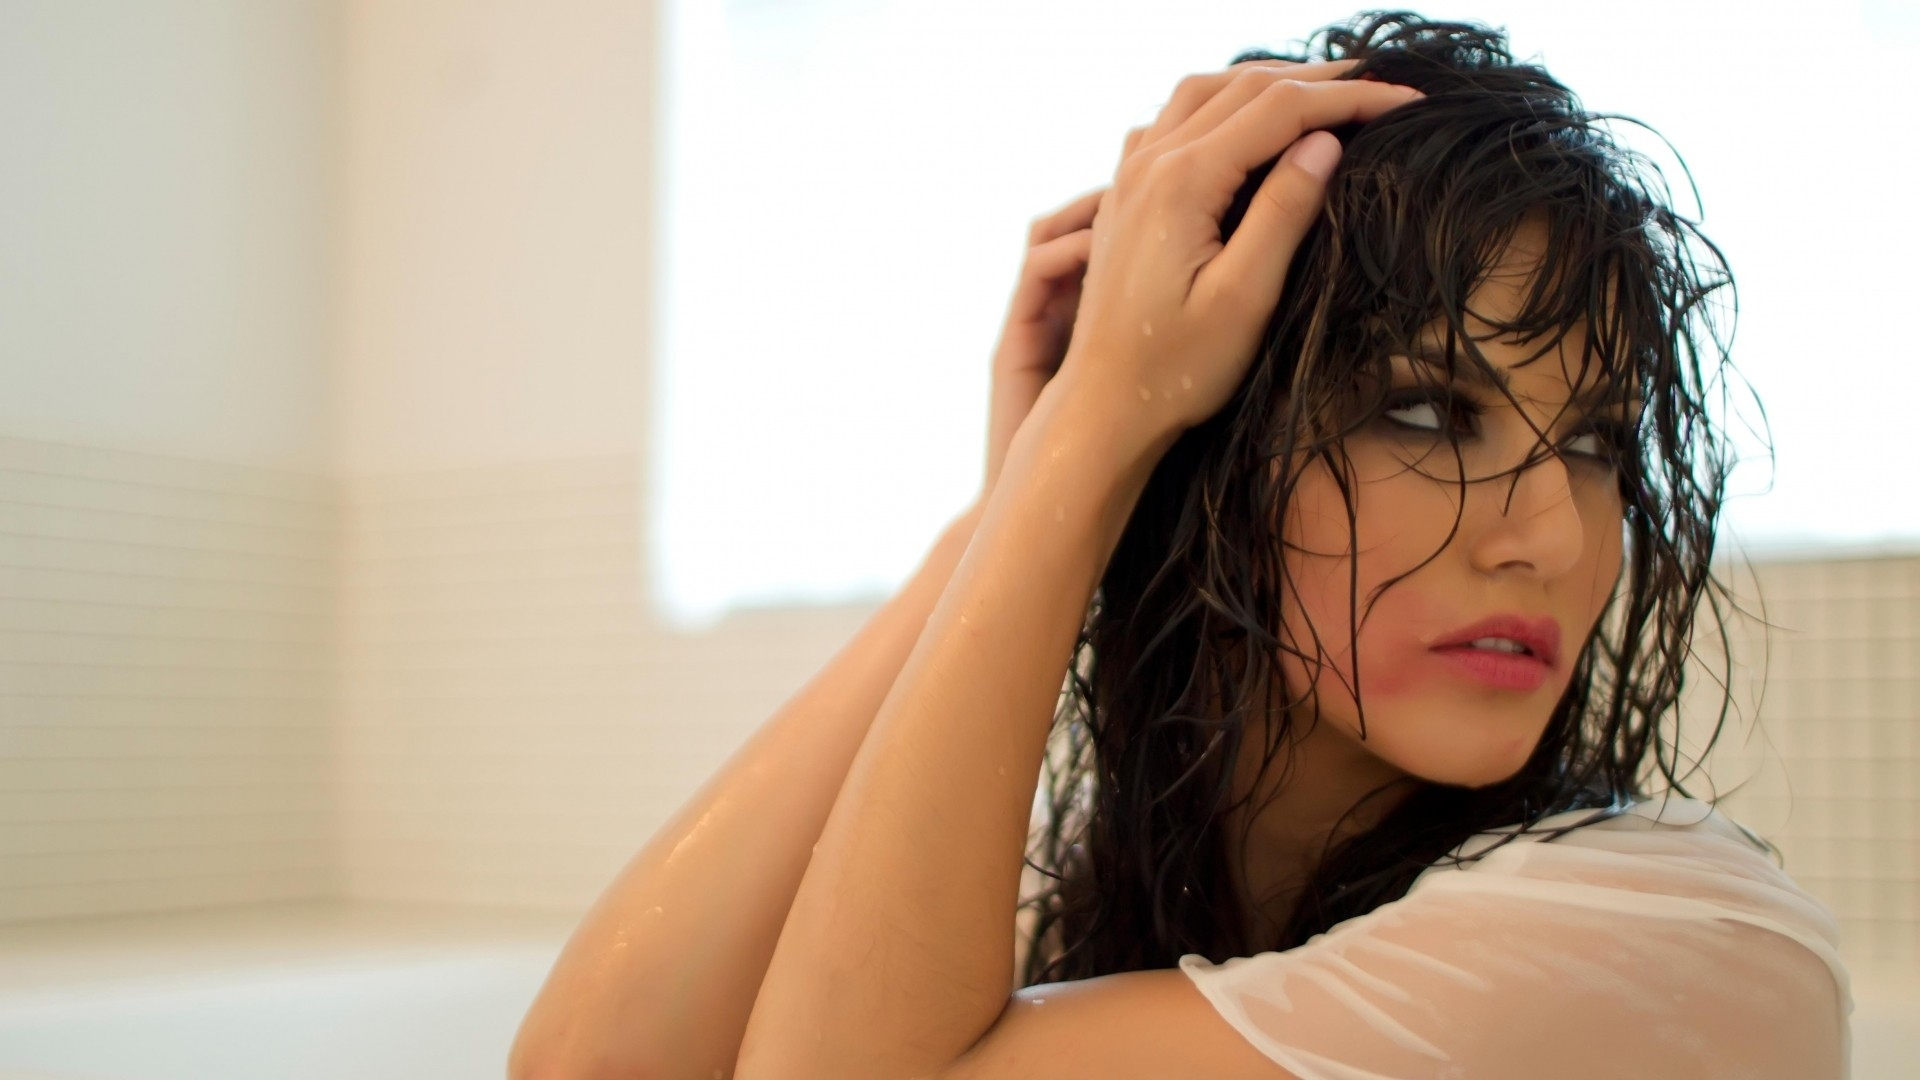 42 units of Sunny Leone Hd Wallpapers 1920x1080